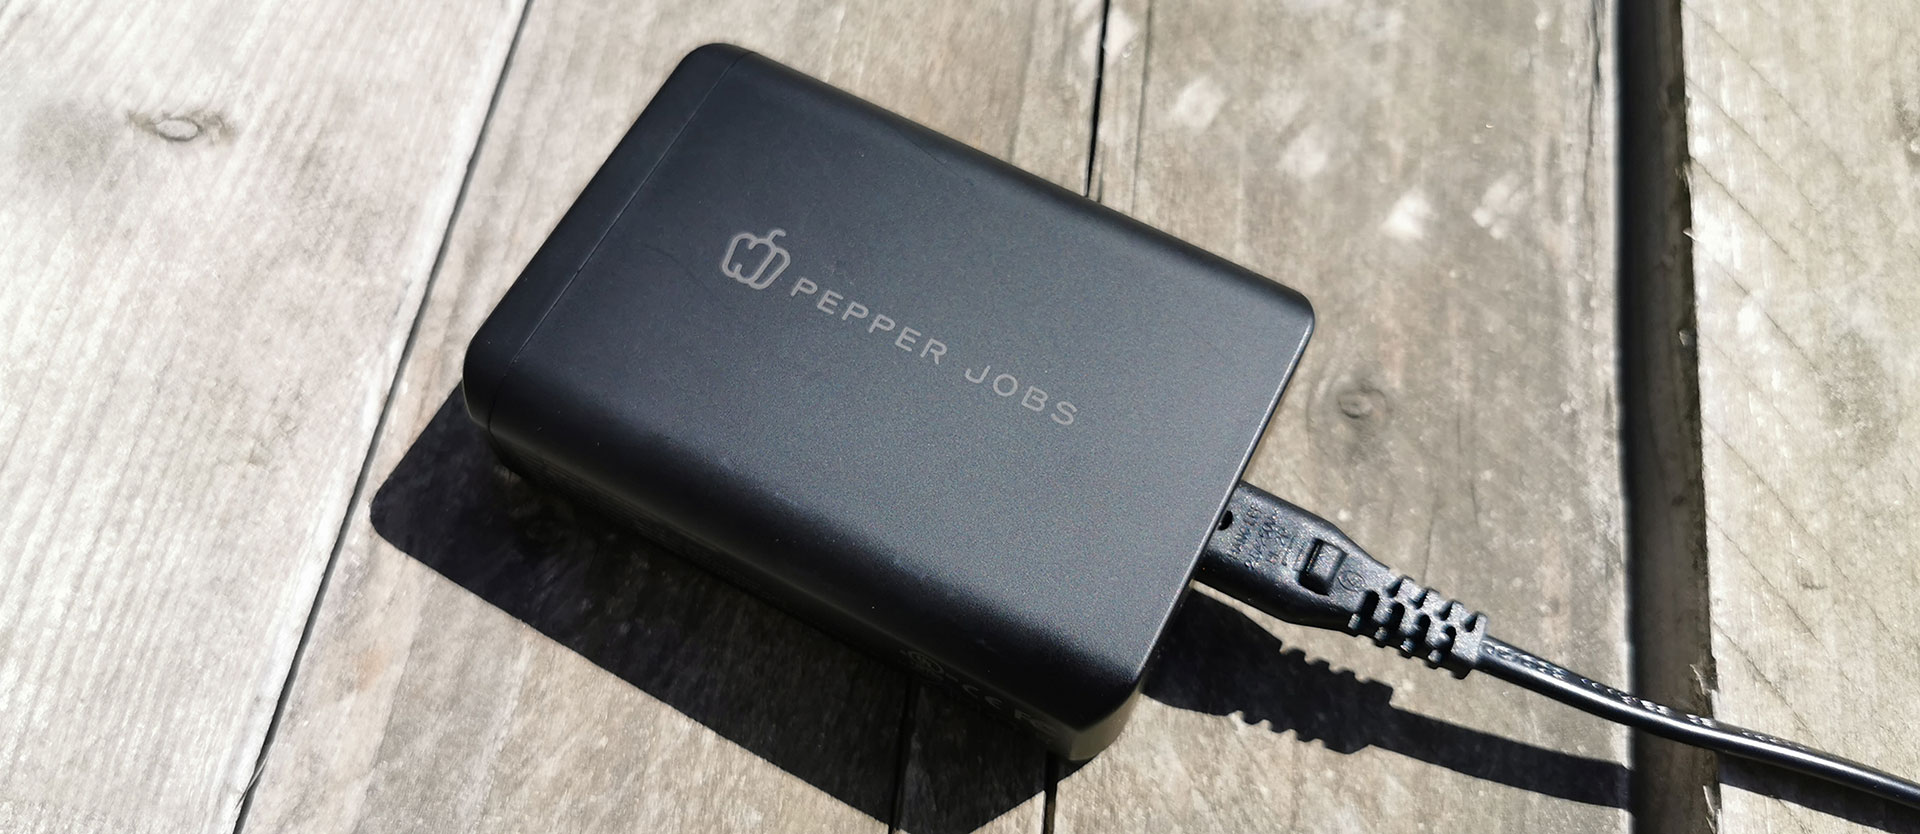 Pepper Jobs PD9000 AC/DC adapter